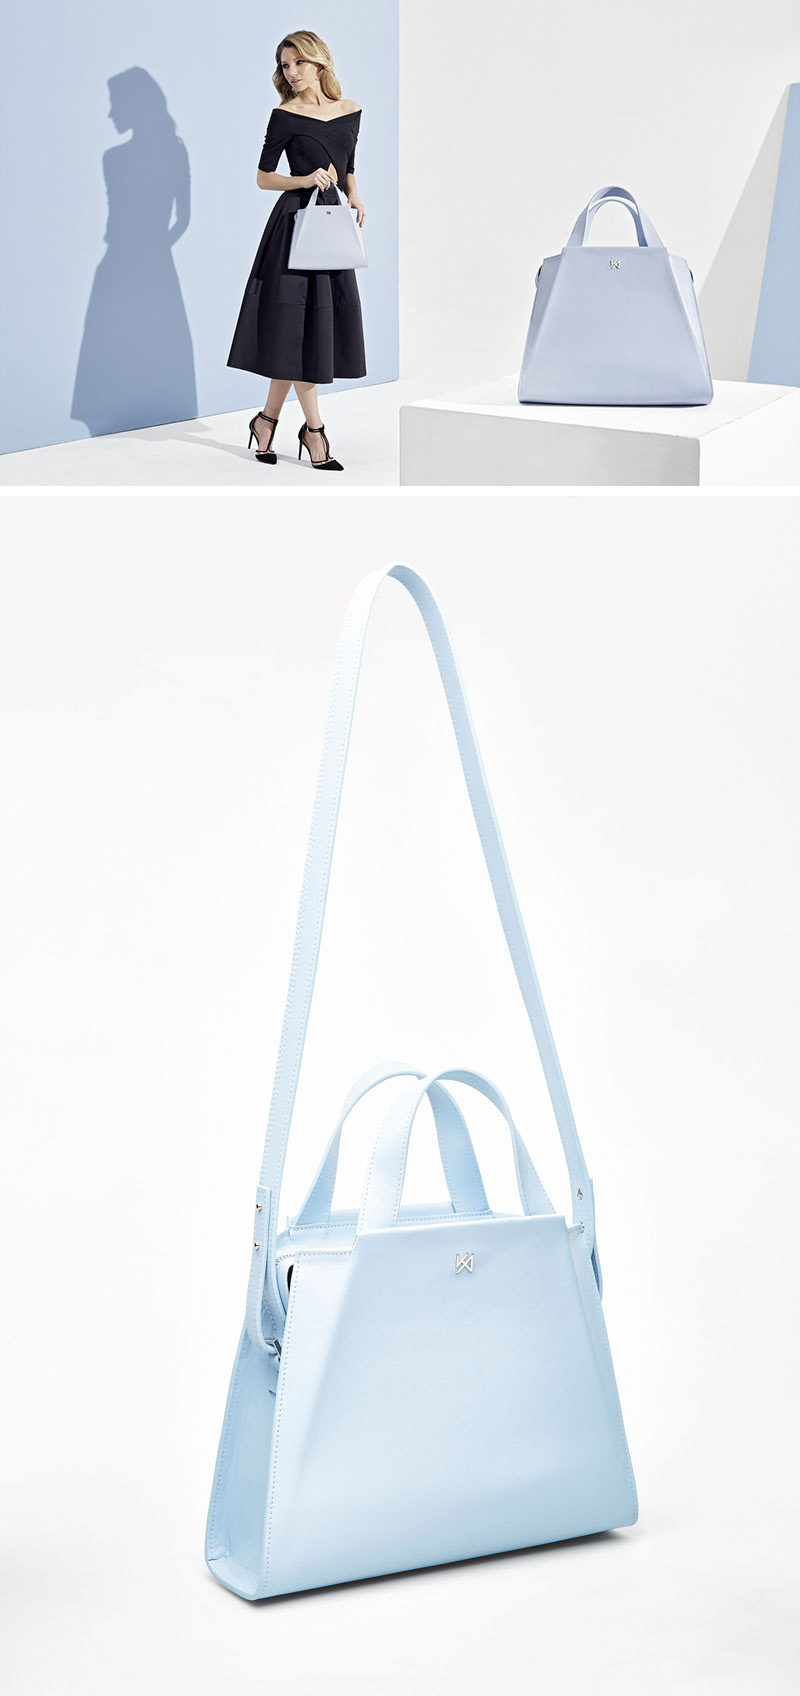 Every girl needs an everyday bag, and the Silhouette Handbag by AGNESKOVACS, with its simple form, allows it to blend seamlessly with any outfit.